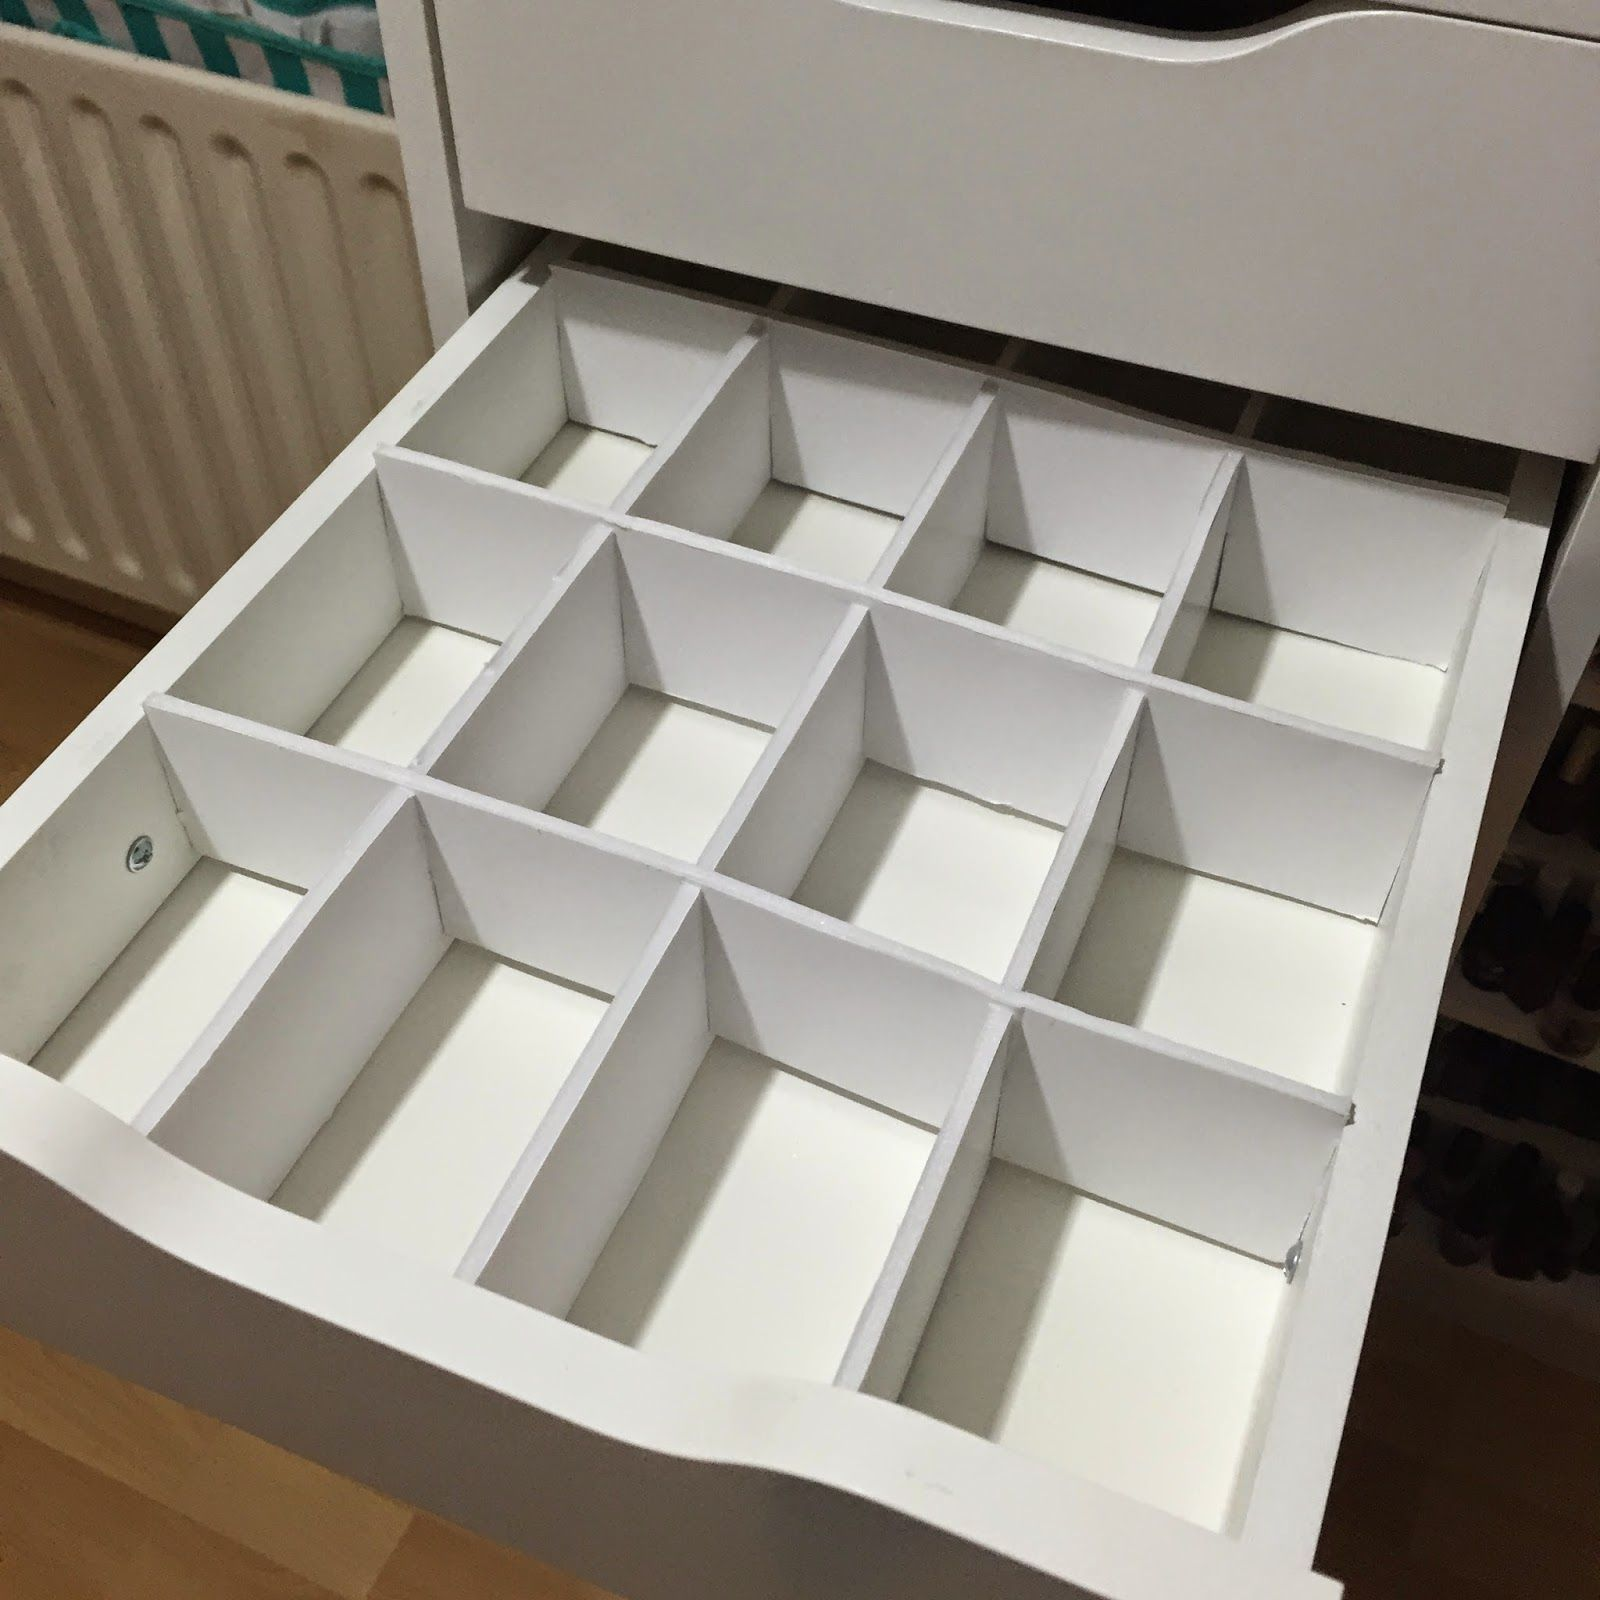 Ikea Aufbewahrung Inspiration Totalmakeupaddict Makeup Storage Inspiration 1 Drawer Dividers